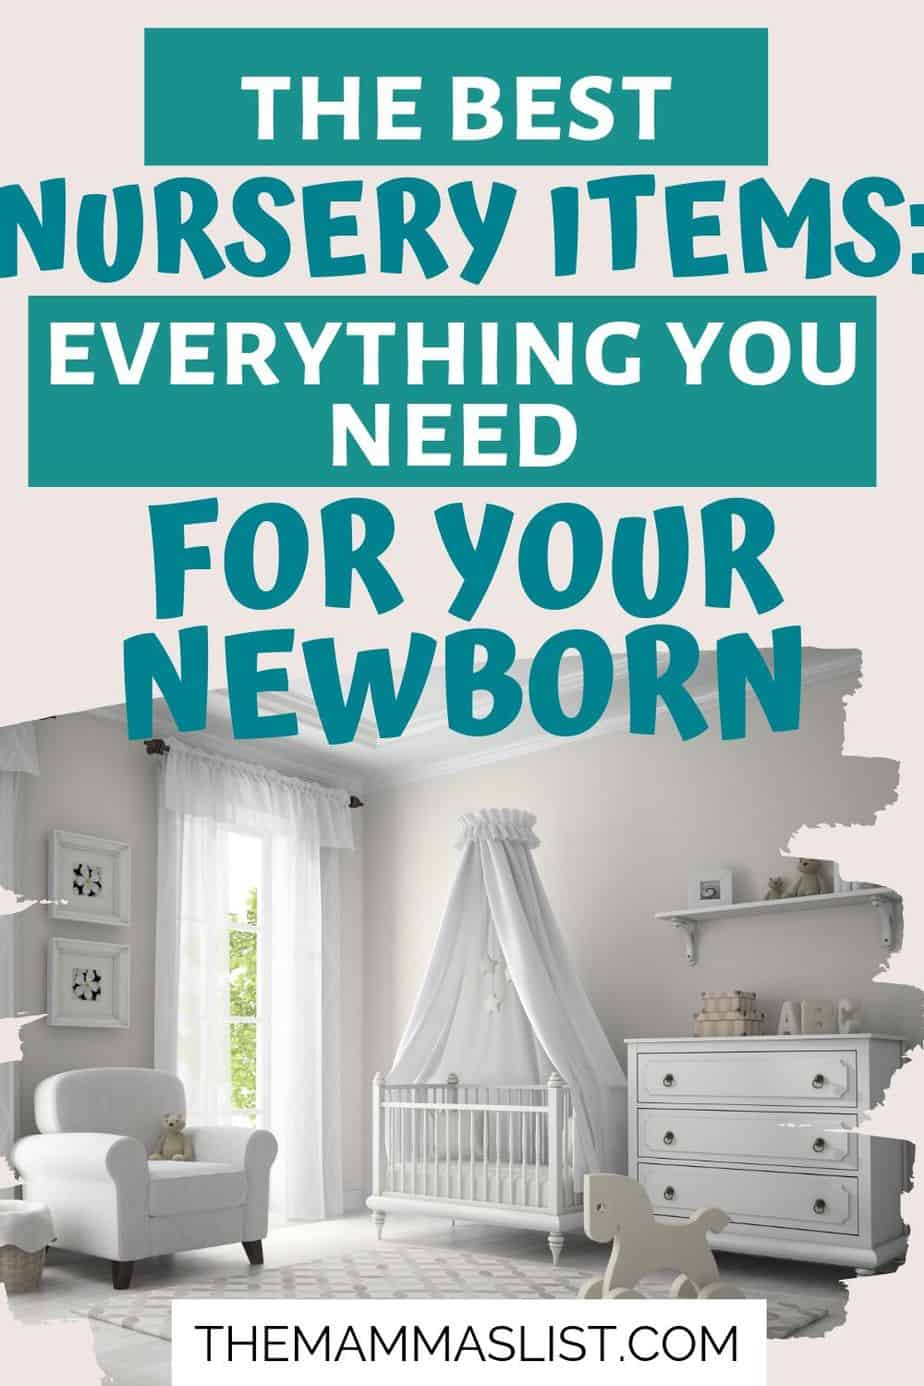 Baby Registry Guide: Must-Haves for your nursery including cribs, mattresses, nursery decor and more!